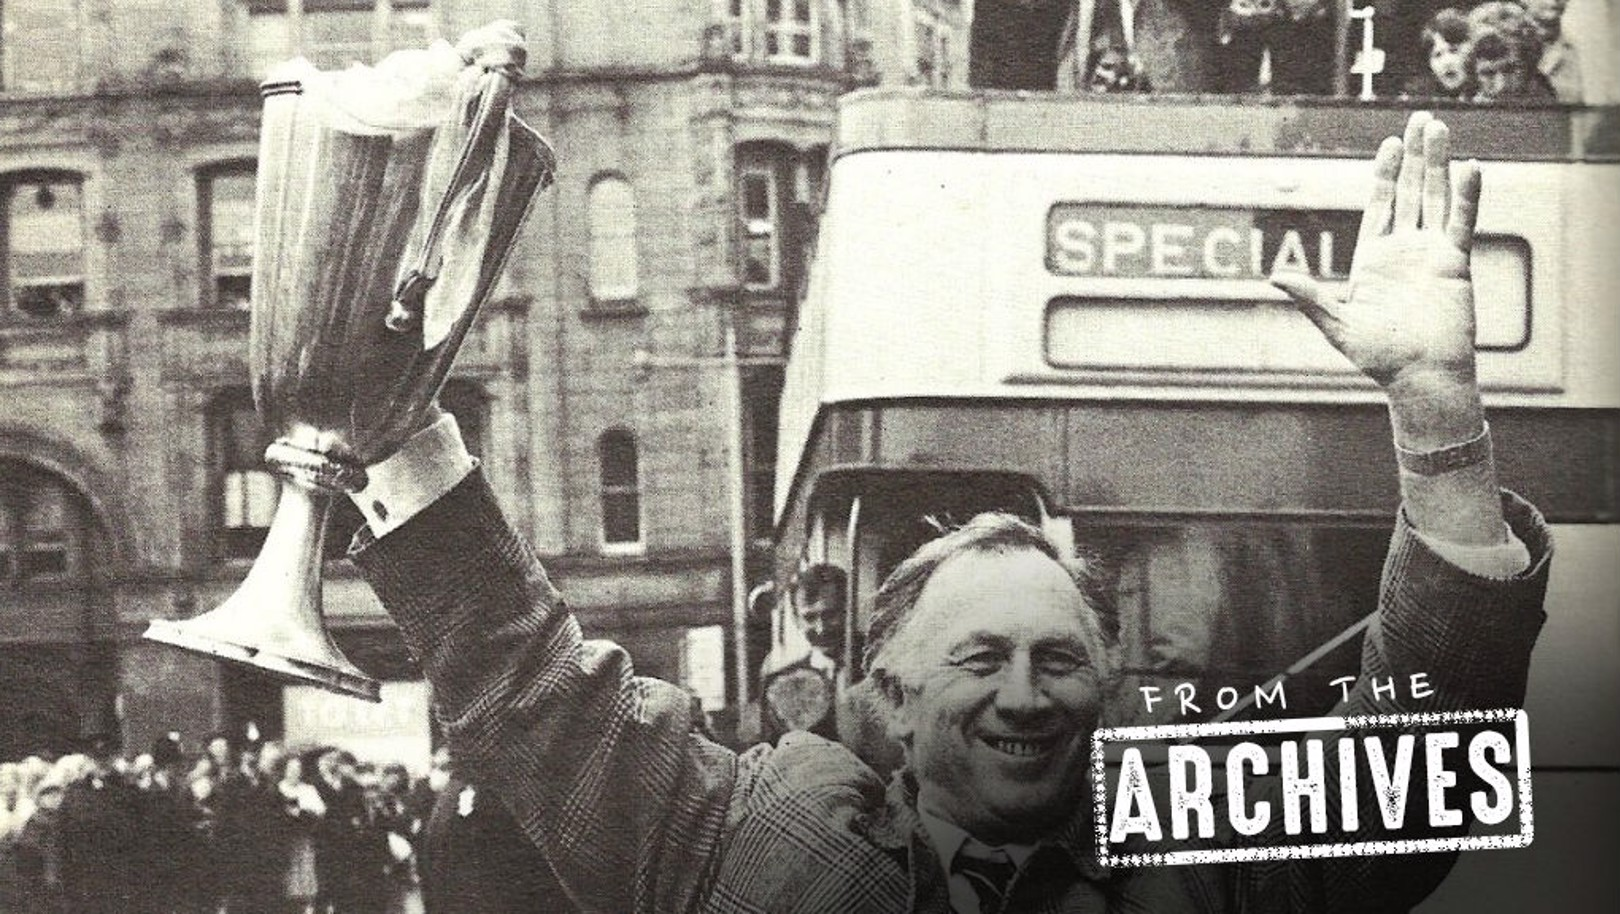 From the archives: Joe Mercer's timeless gift